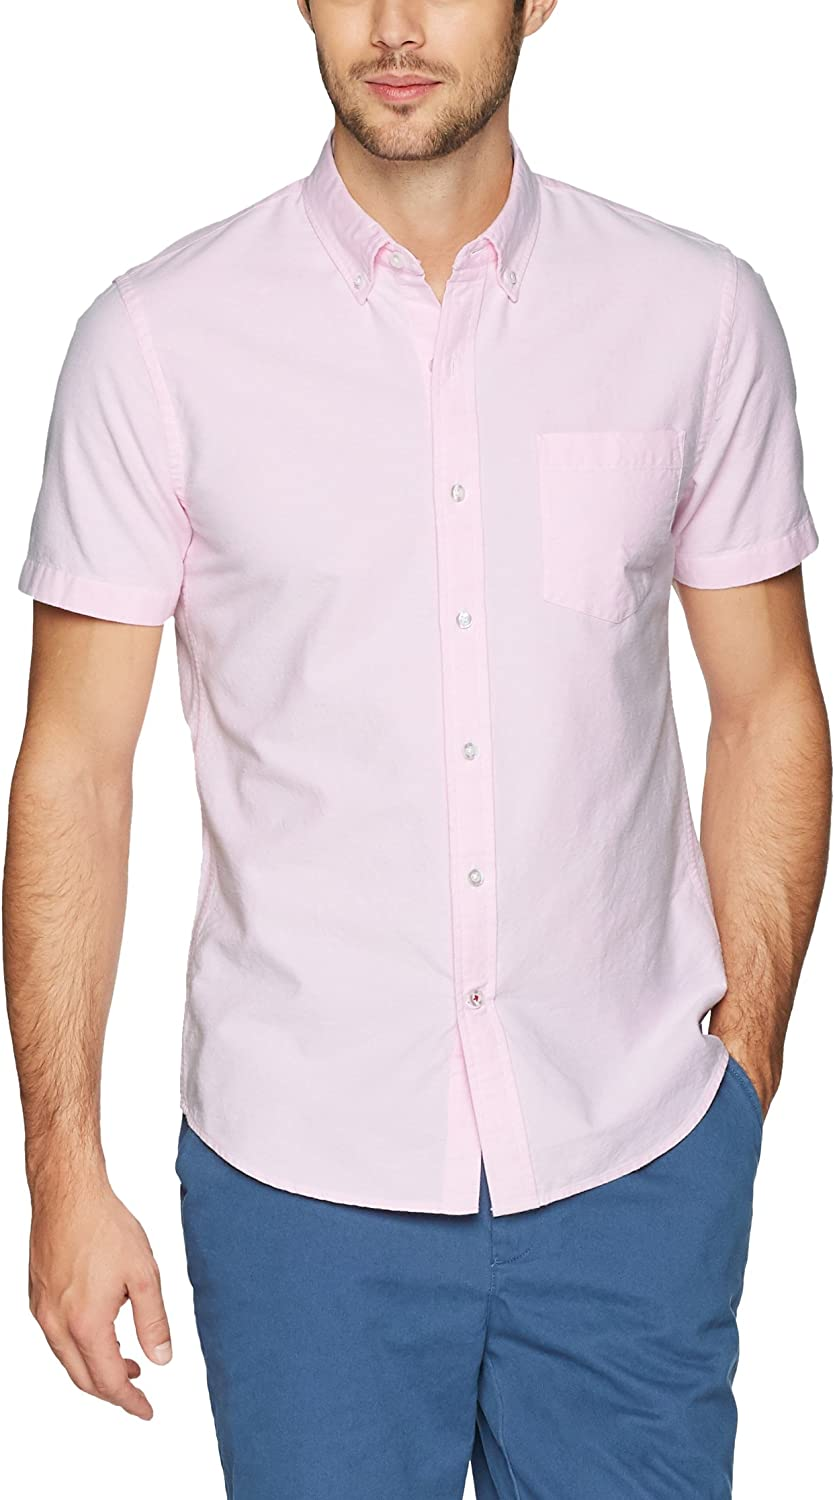 Brand - Goodthreads Men's Slim-Fit Short-Sleeve Solid Oxford Shirt with Pocket: Clothing